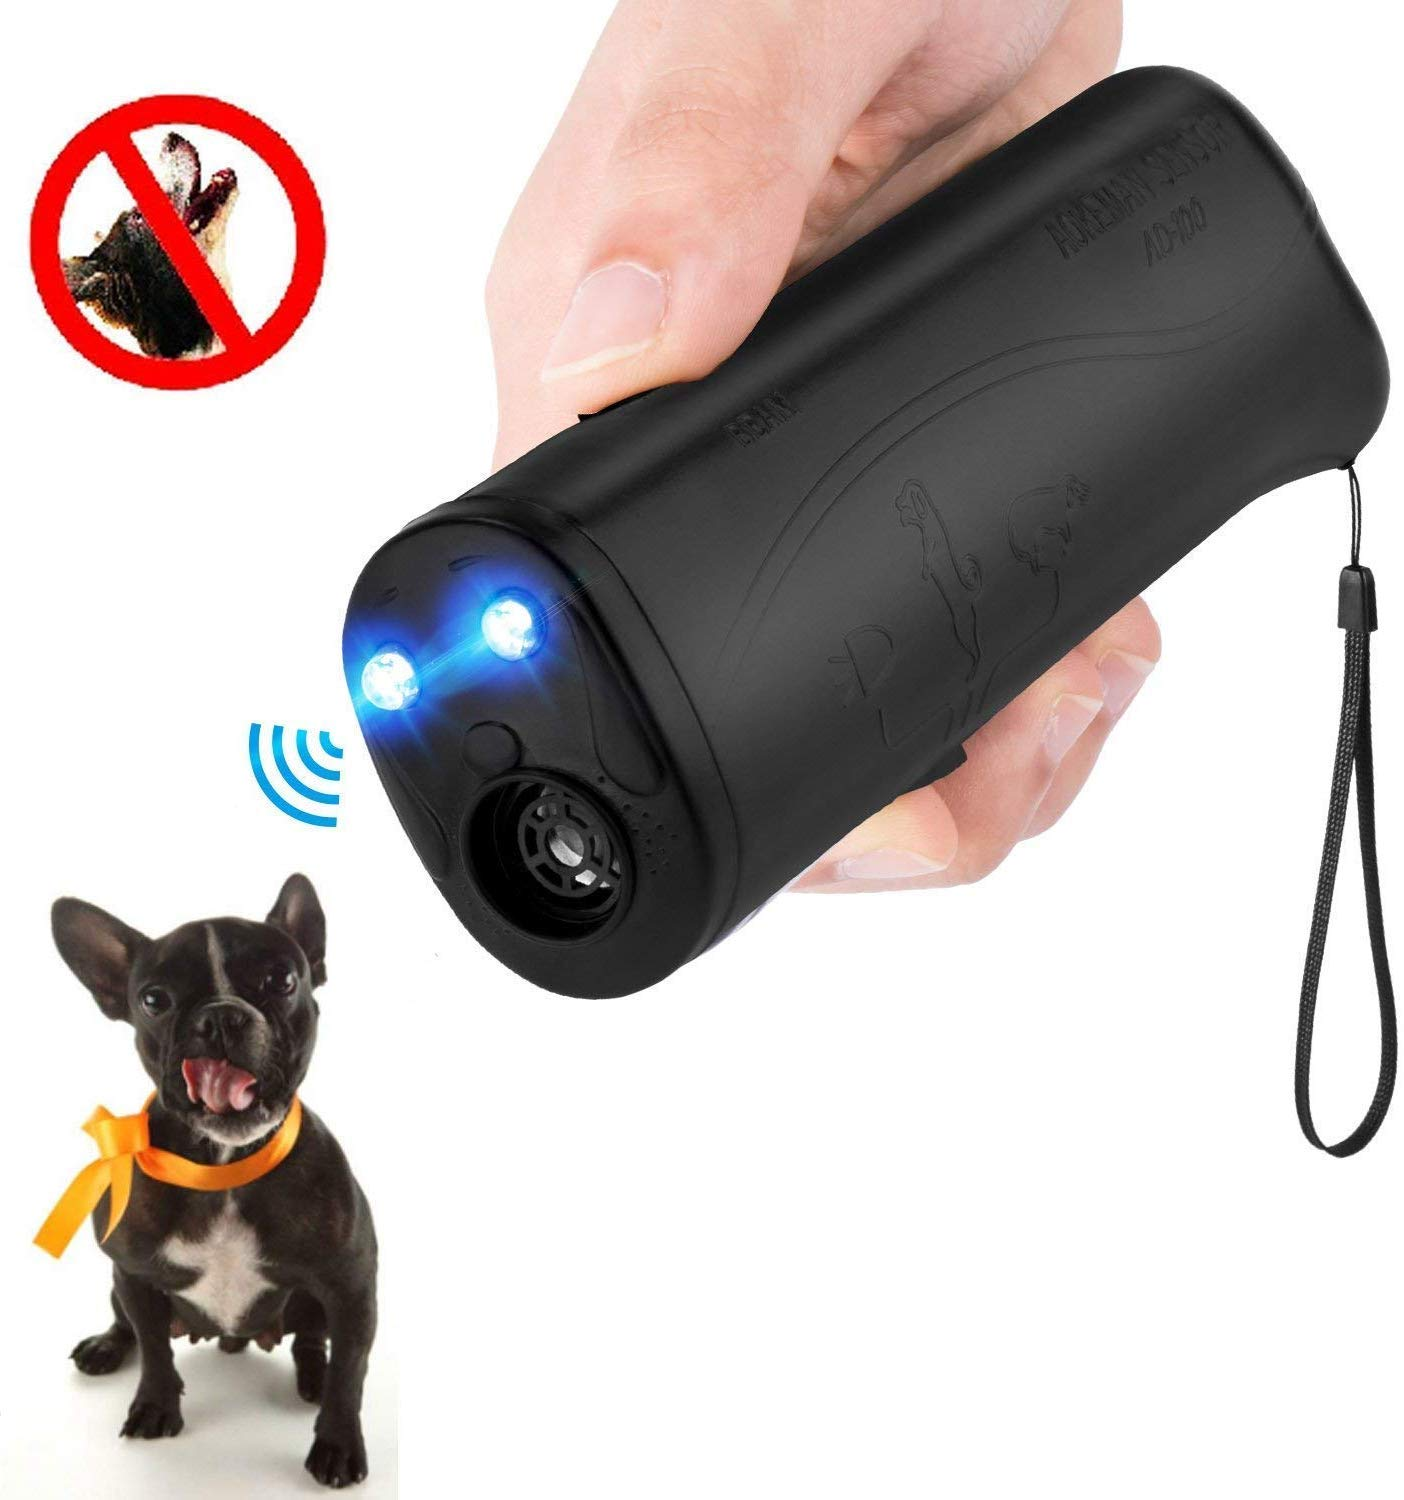 MEIREN Handheld Dog Repellent & Trainer, Anti Barking Device & Ultrasonic Dog Training Aid with Control Range of 30 Ft by MEIREN